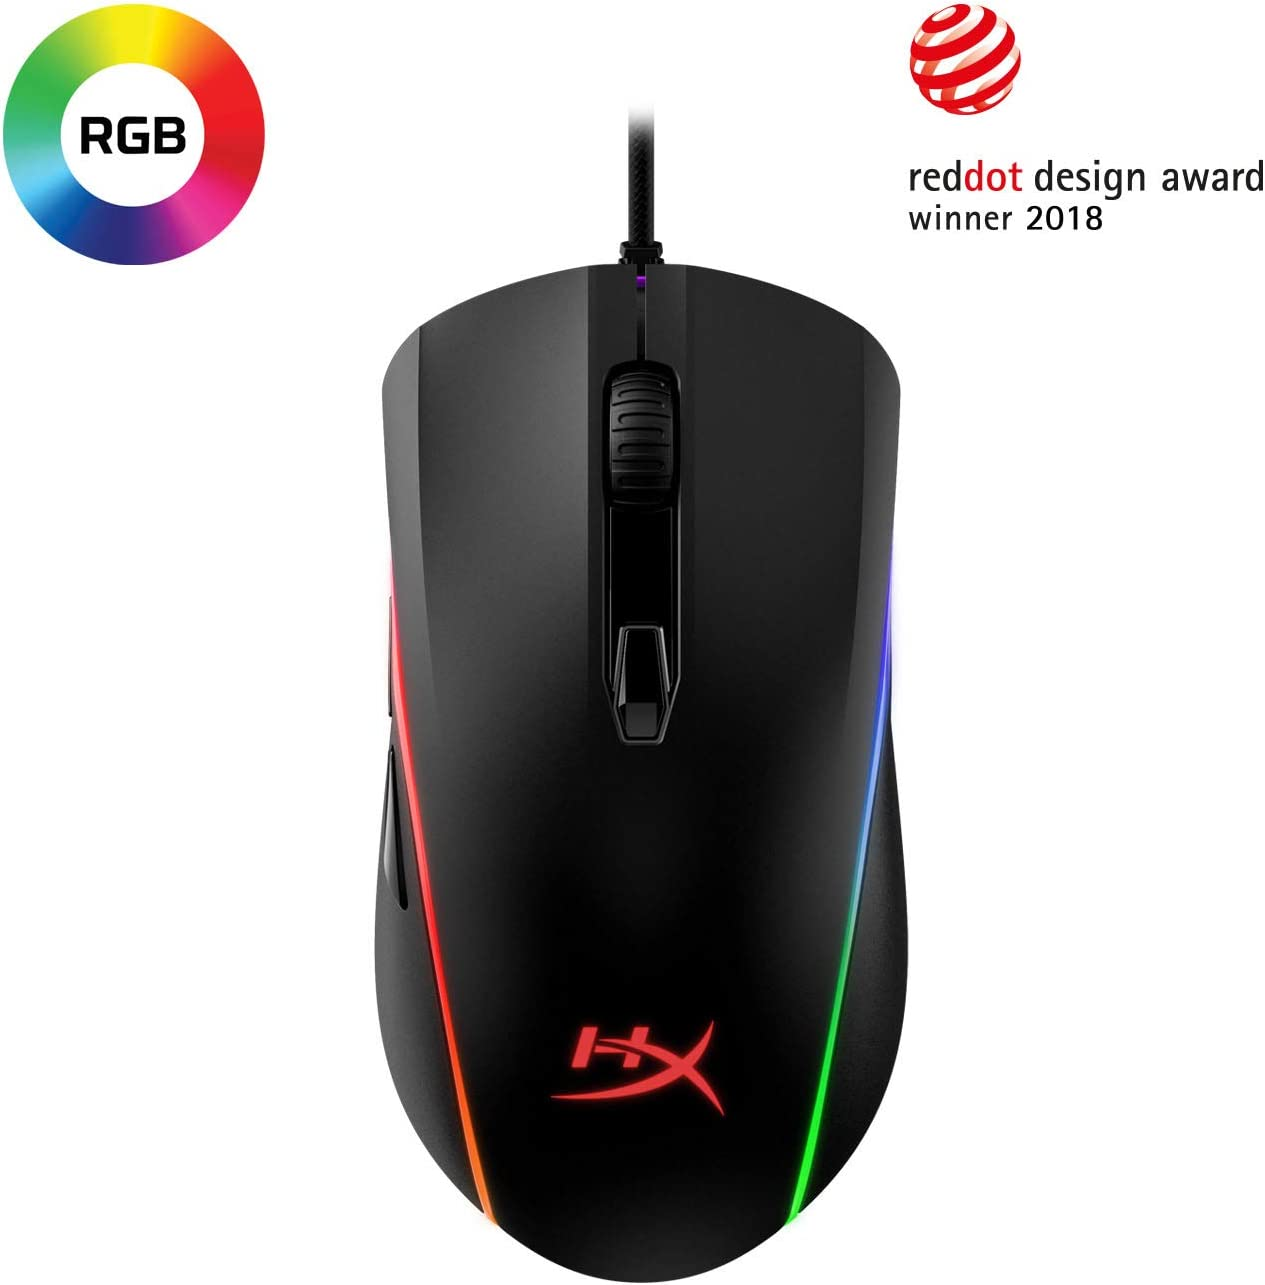 HyperX Pulsefire Surge - RGB Wired Optical Gaming Mouse, Pixart 3389 Sensor up to 16000 DPI, Ergonomic, 6 Programmable Buttons, Compatible with Windows 10/8.1/8/7 - Black